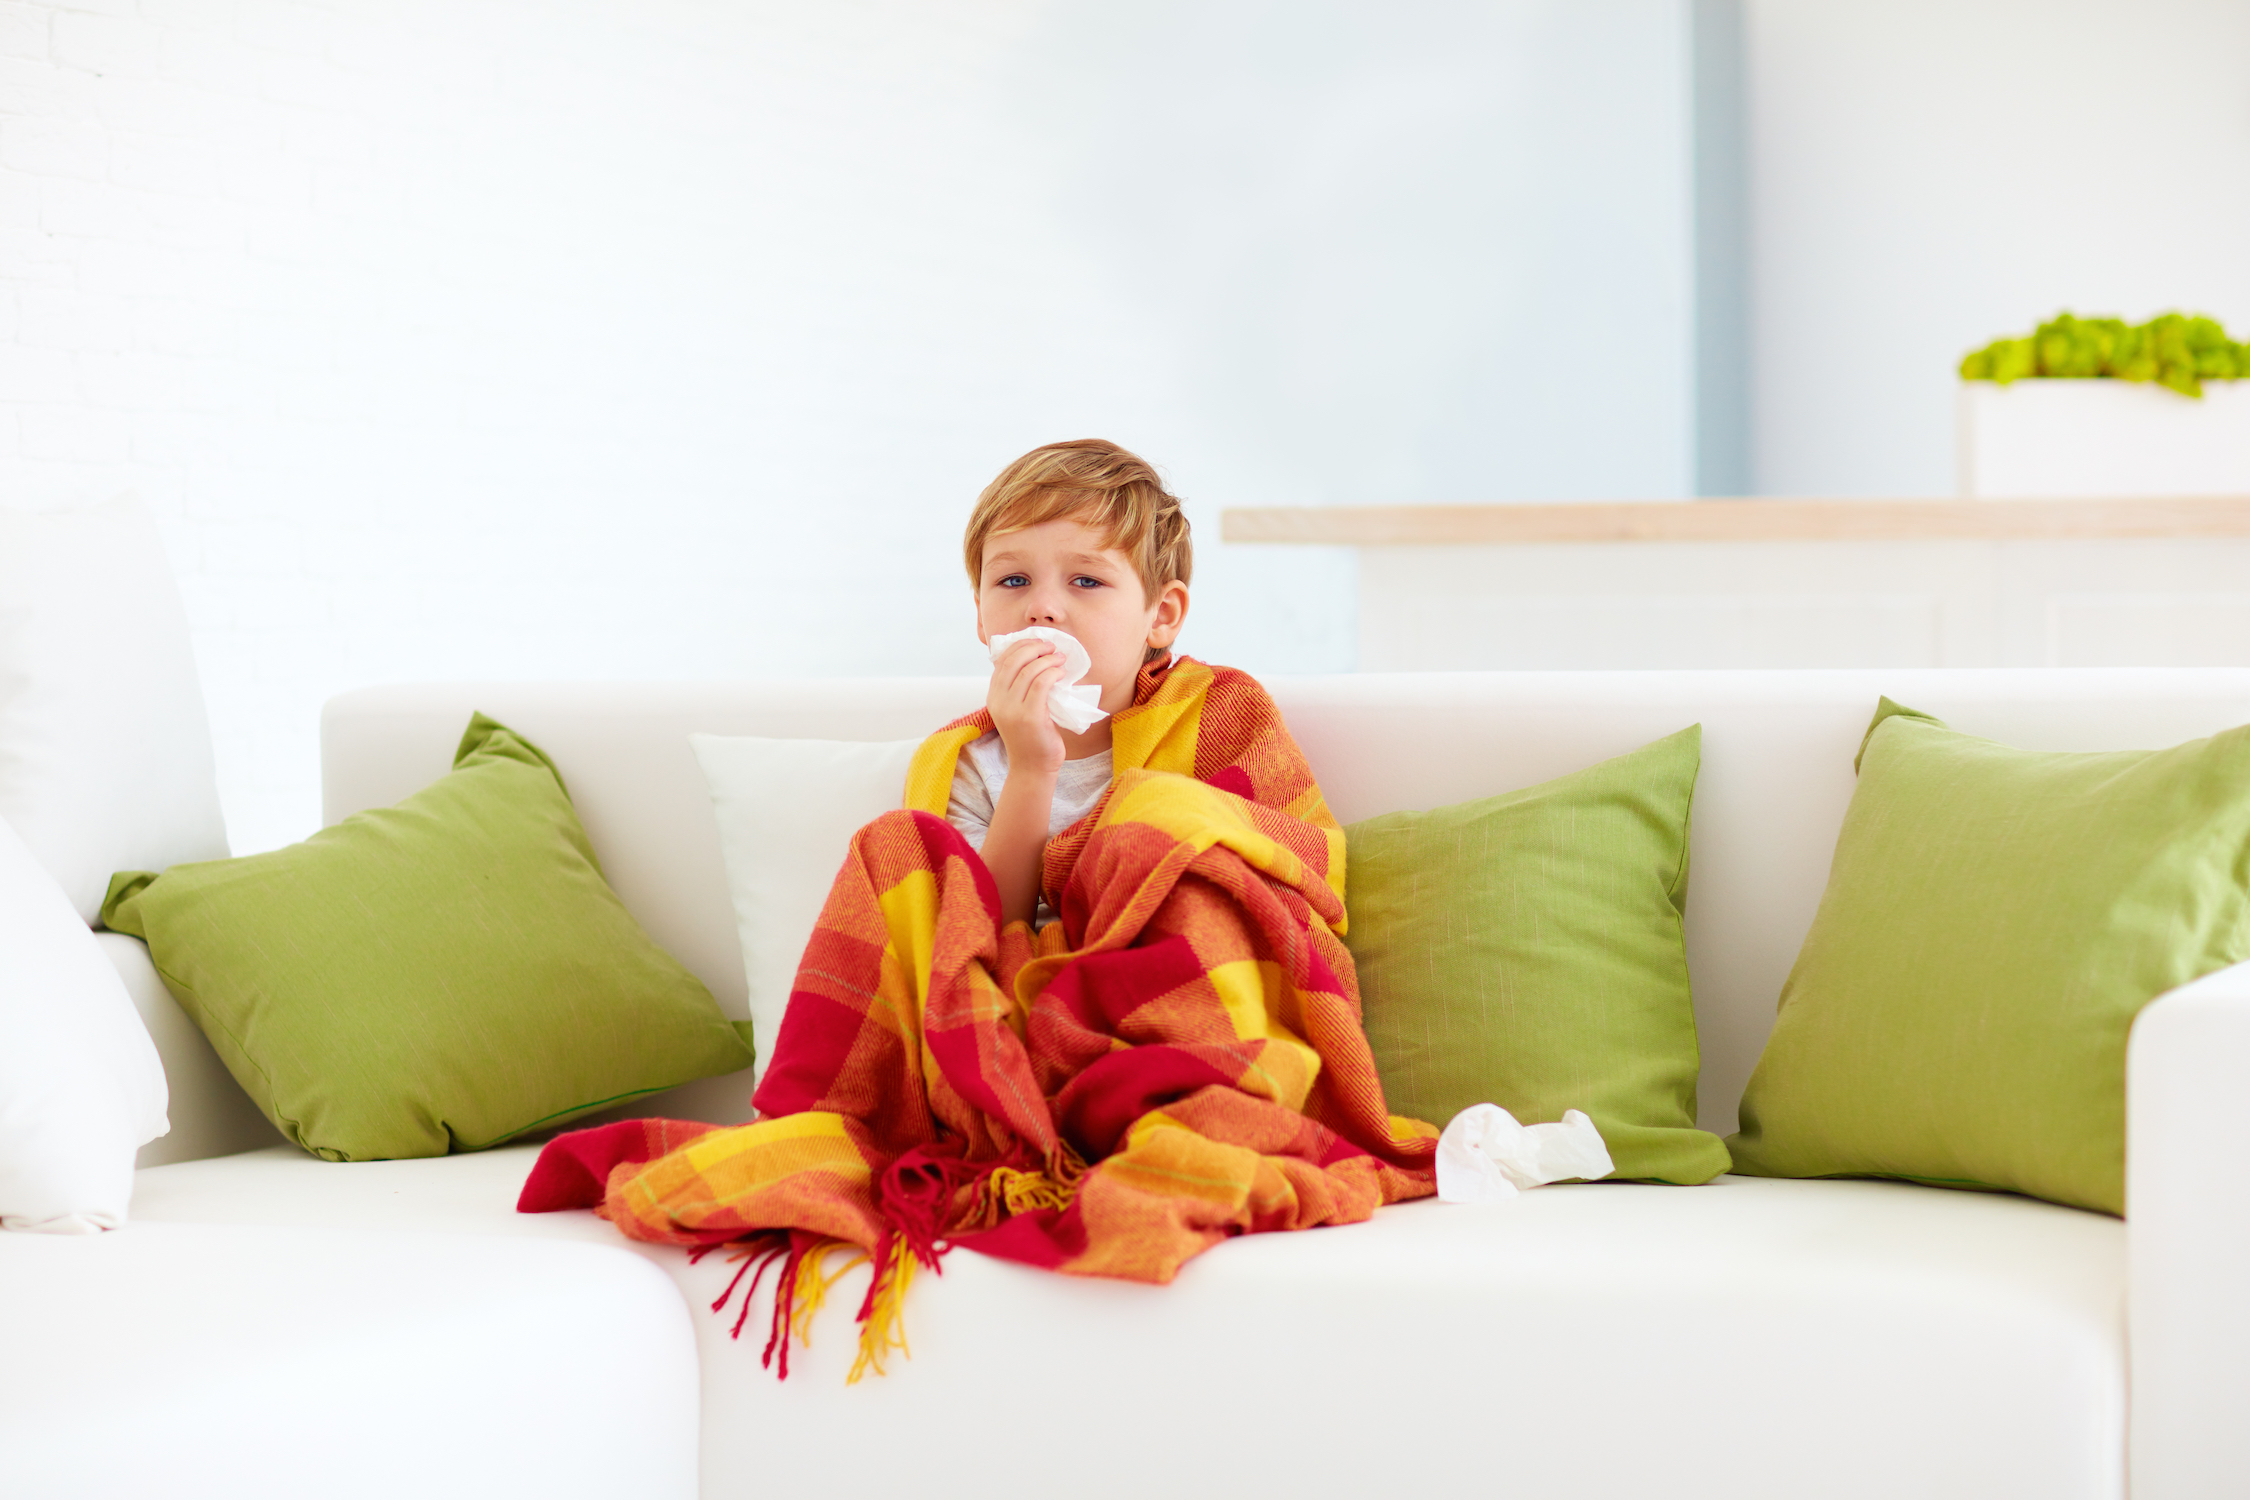 A high daily dose of vitamin D does not lower the risk of wintertime upper respiratory tract infections in young children.